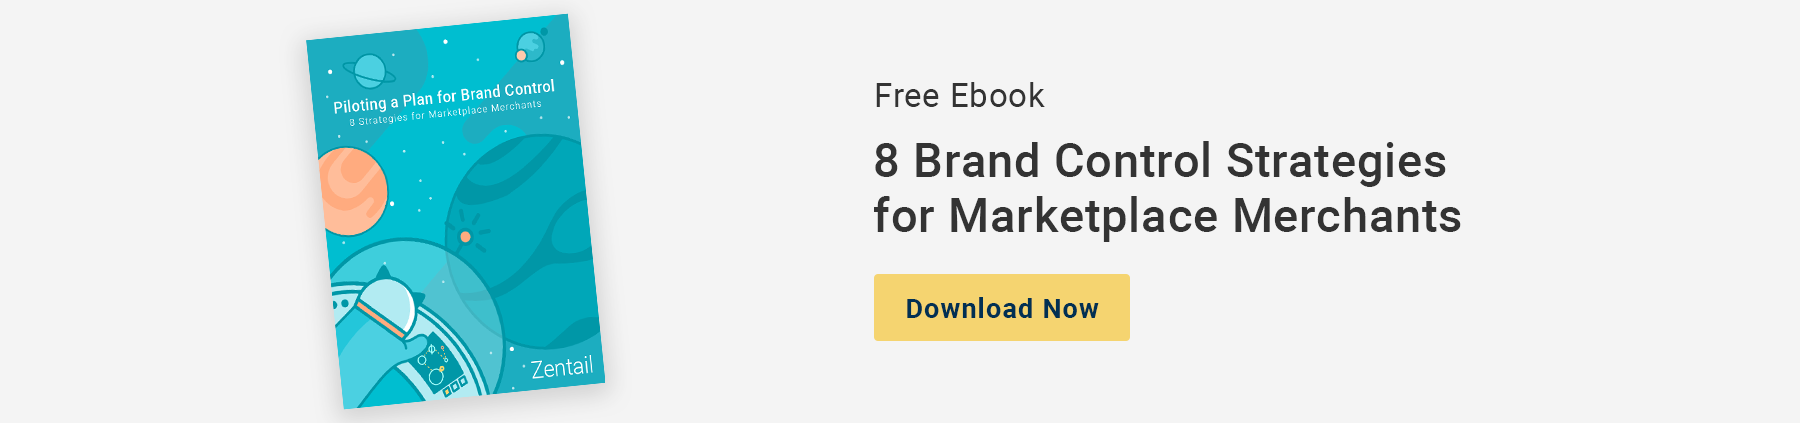 free downloadable ebook on brand control strategies for marketplace merchants